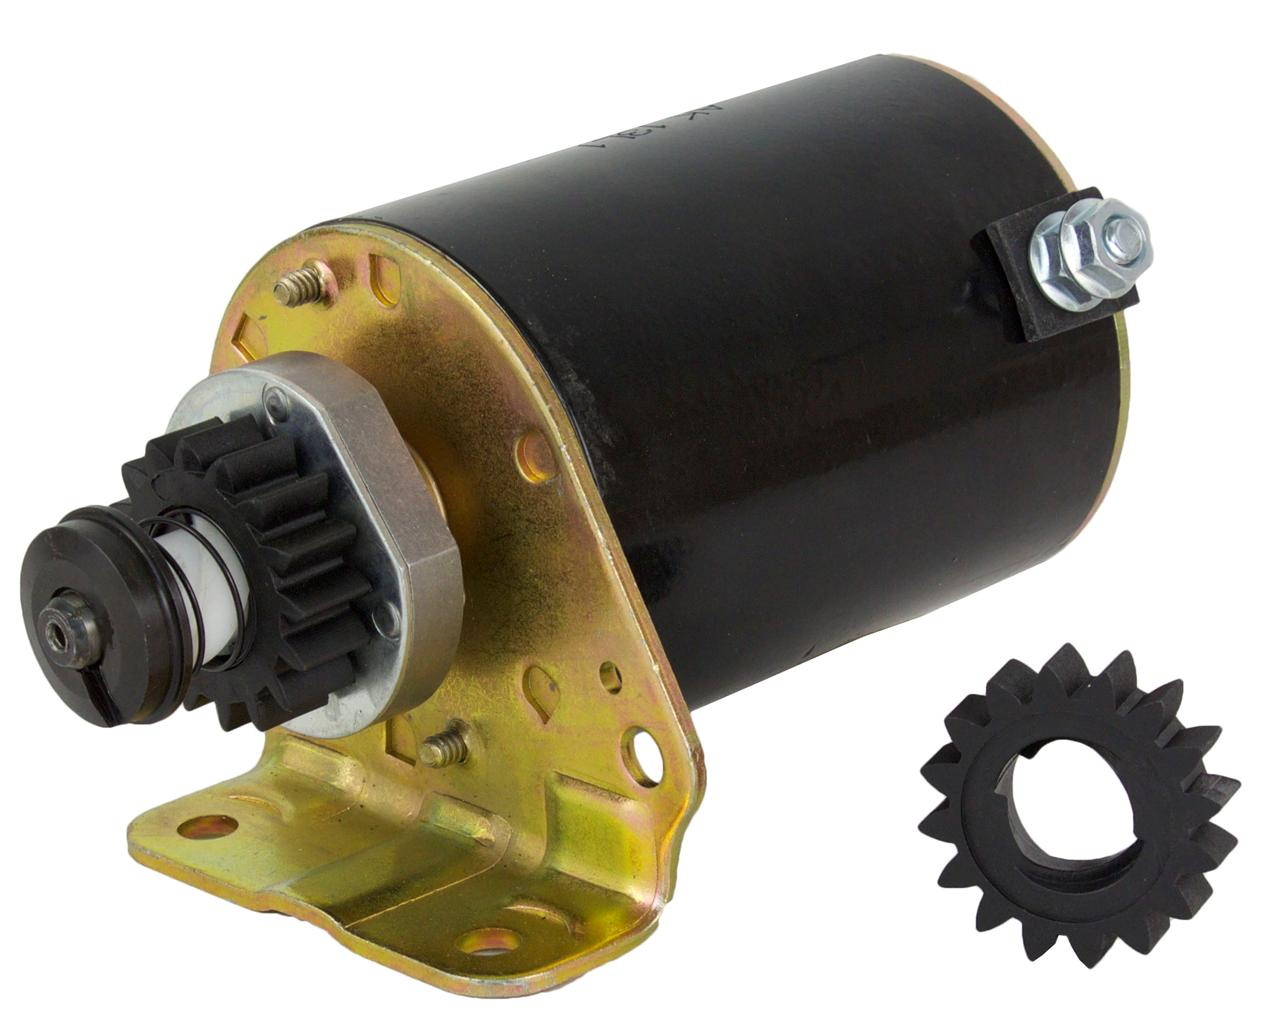 briggs and stratton starter parts accessories new starter motor briggs stratton cooled engines 12hp 16hp gear 391423